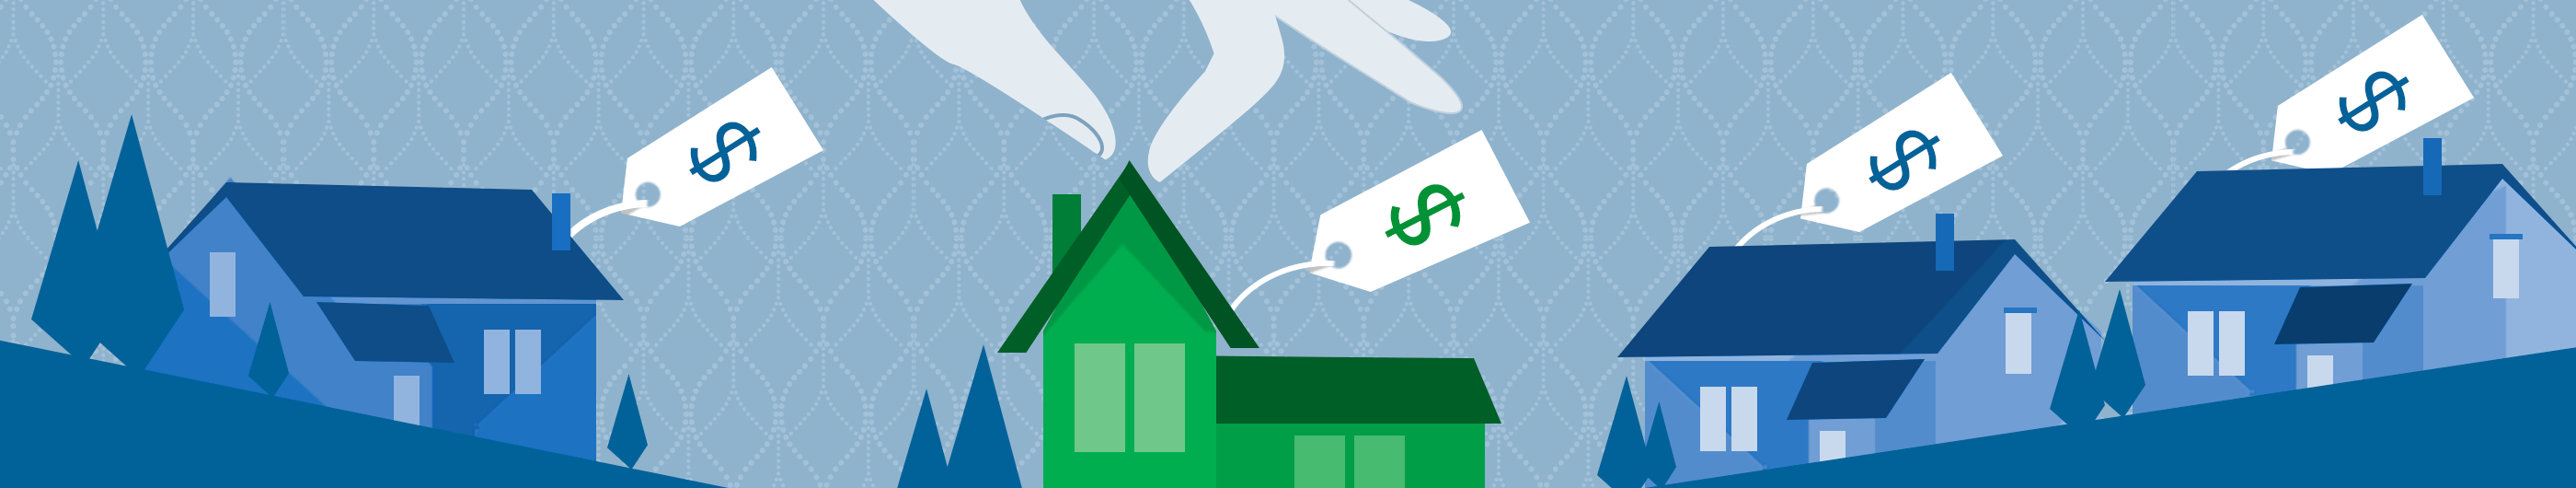 illustration of a hand reaching for a green house with a price tag, with out blue houses with price tags in the background